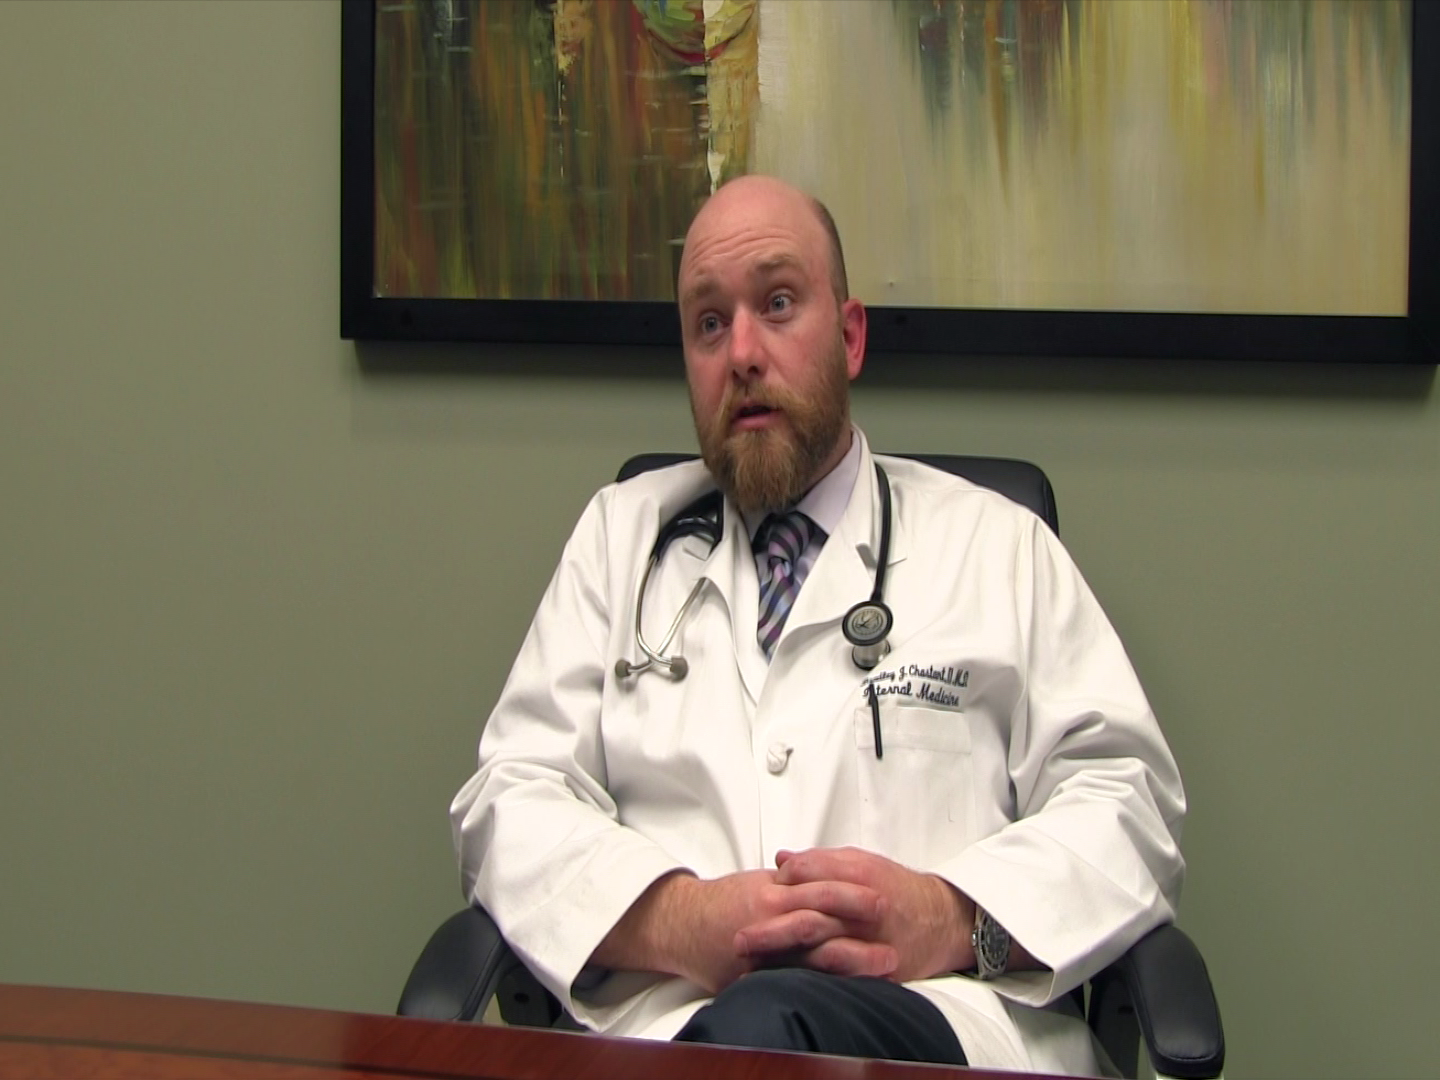 Dr. Chastant II talks about his practice